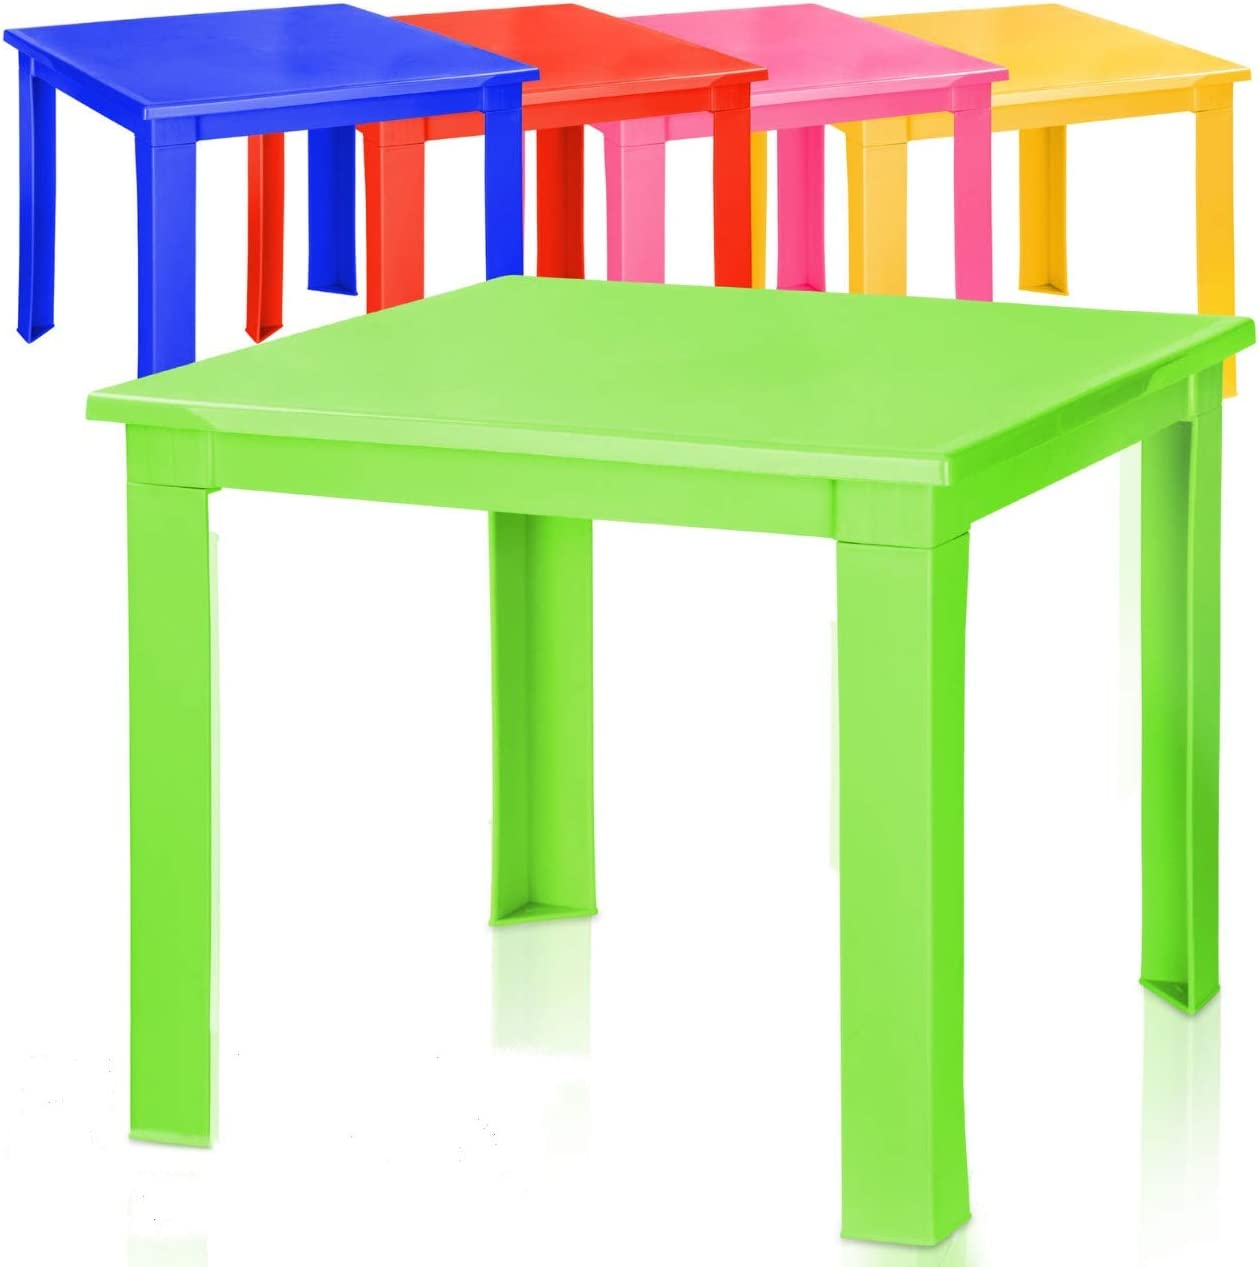 Blue Kids Children Plastic Table Strong Folding Table High Quality Suitable for Outdoor Side Table